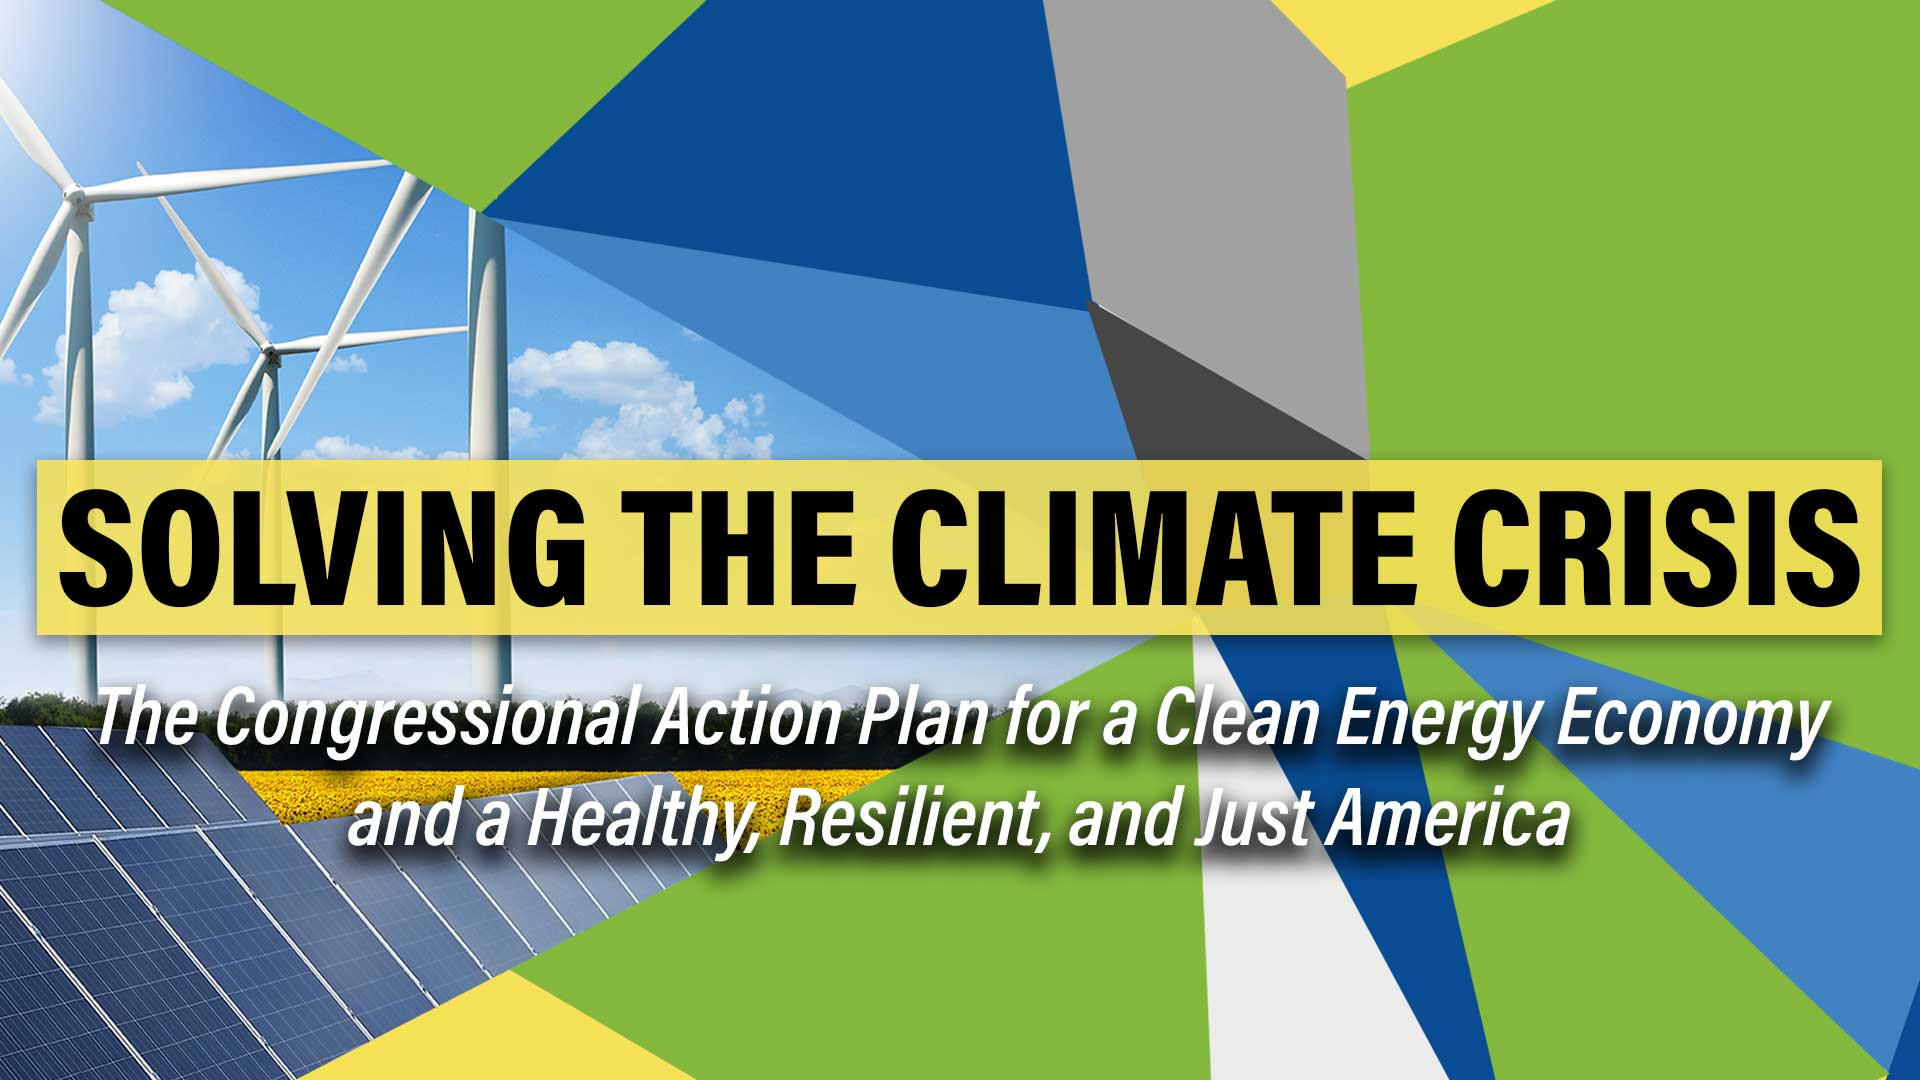 Solving the Climate Crisis: The Congressional Action Plan for a Clean Energy Economy and a Healthy and Just America